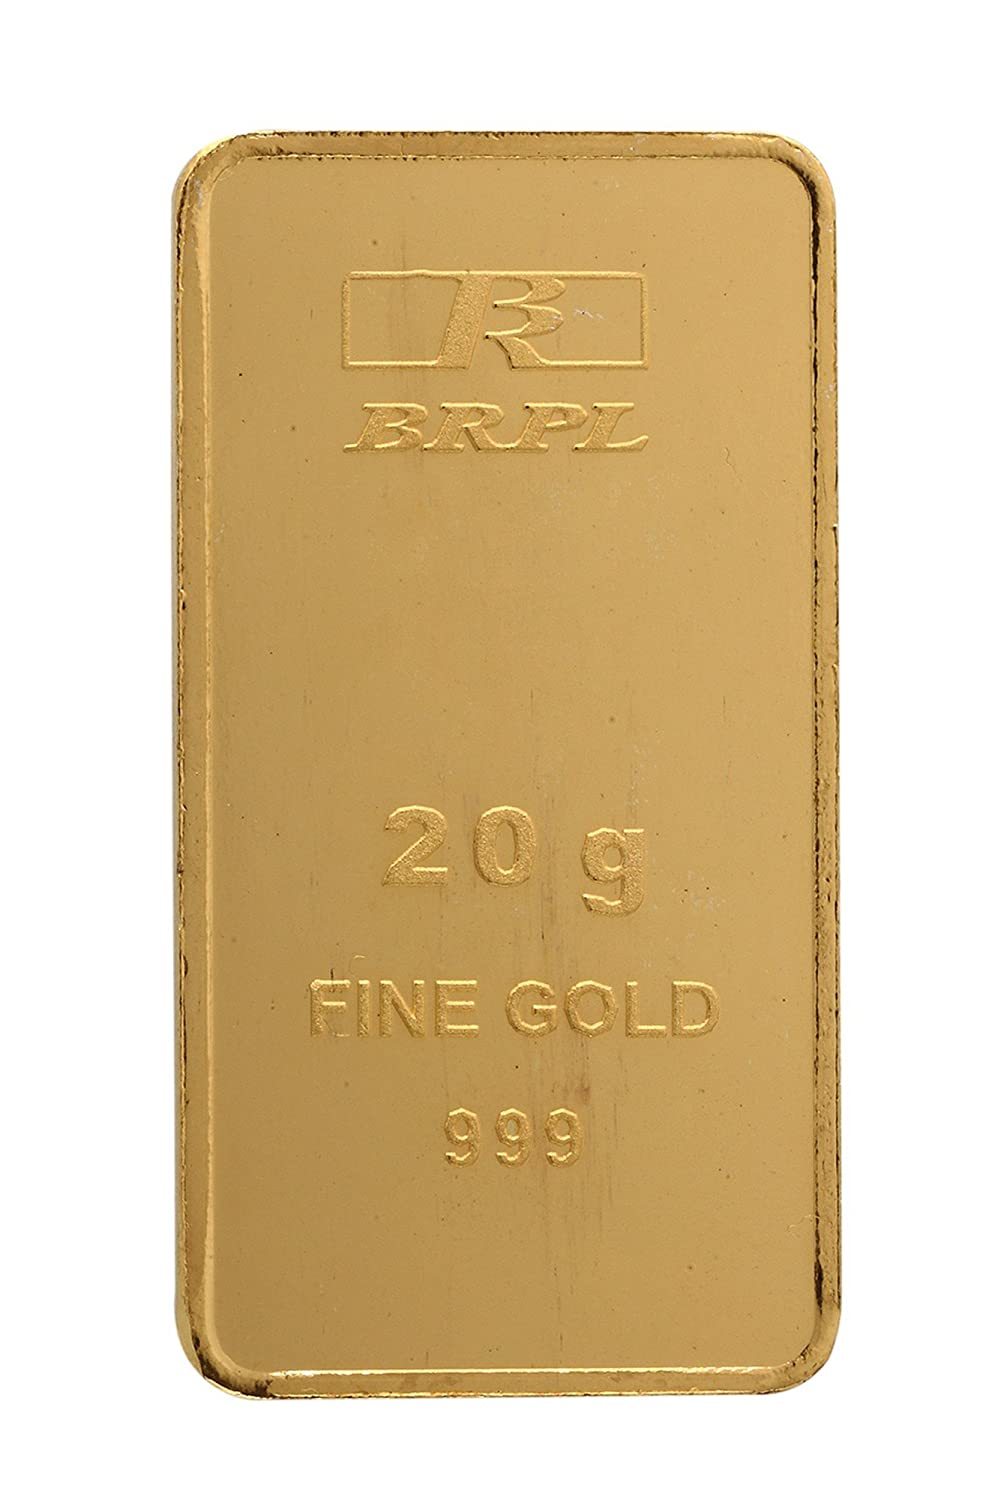 20 gm, 24k (999) Yellow Gold Bar